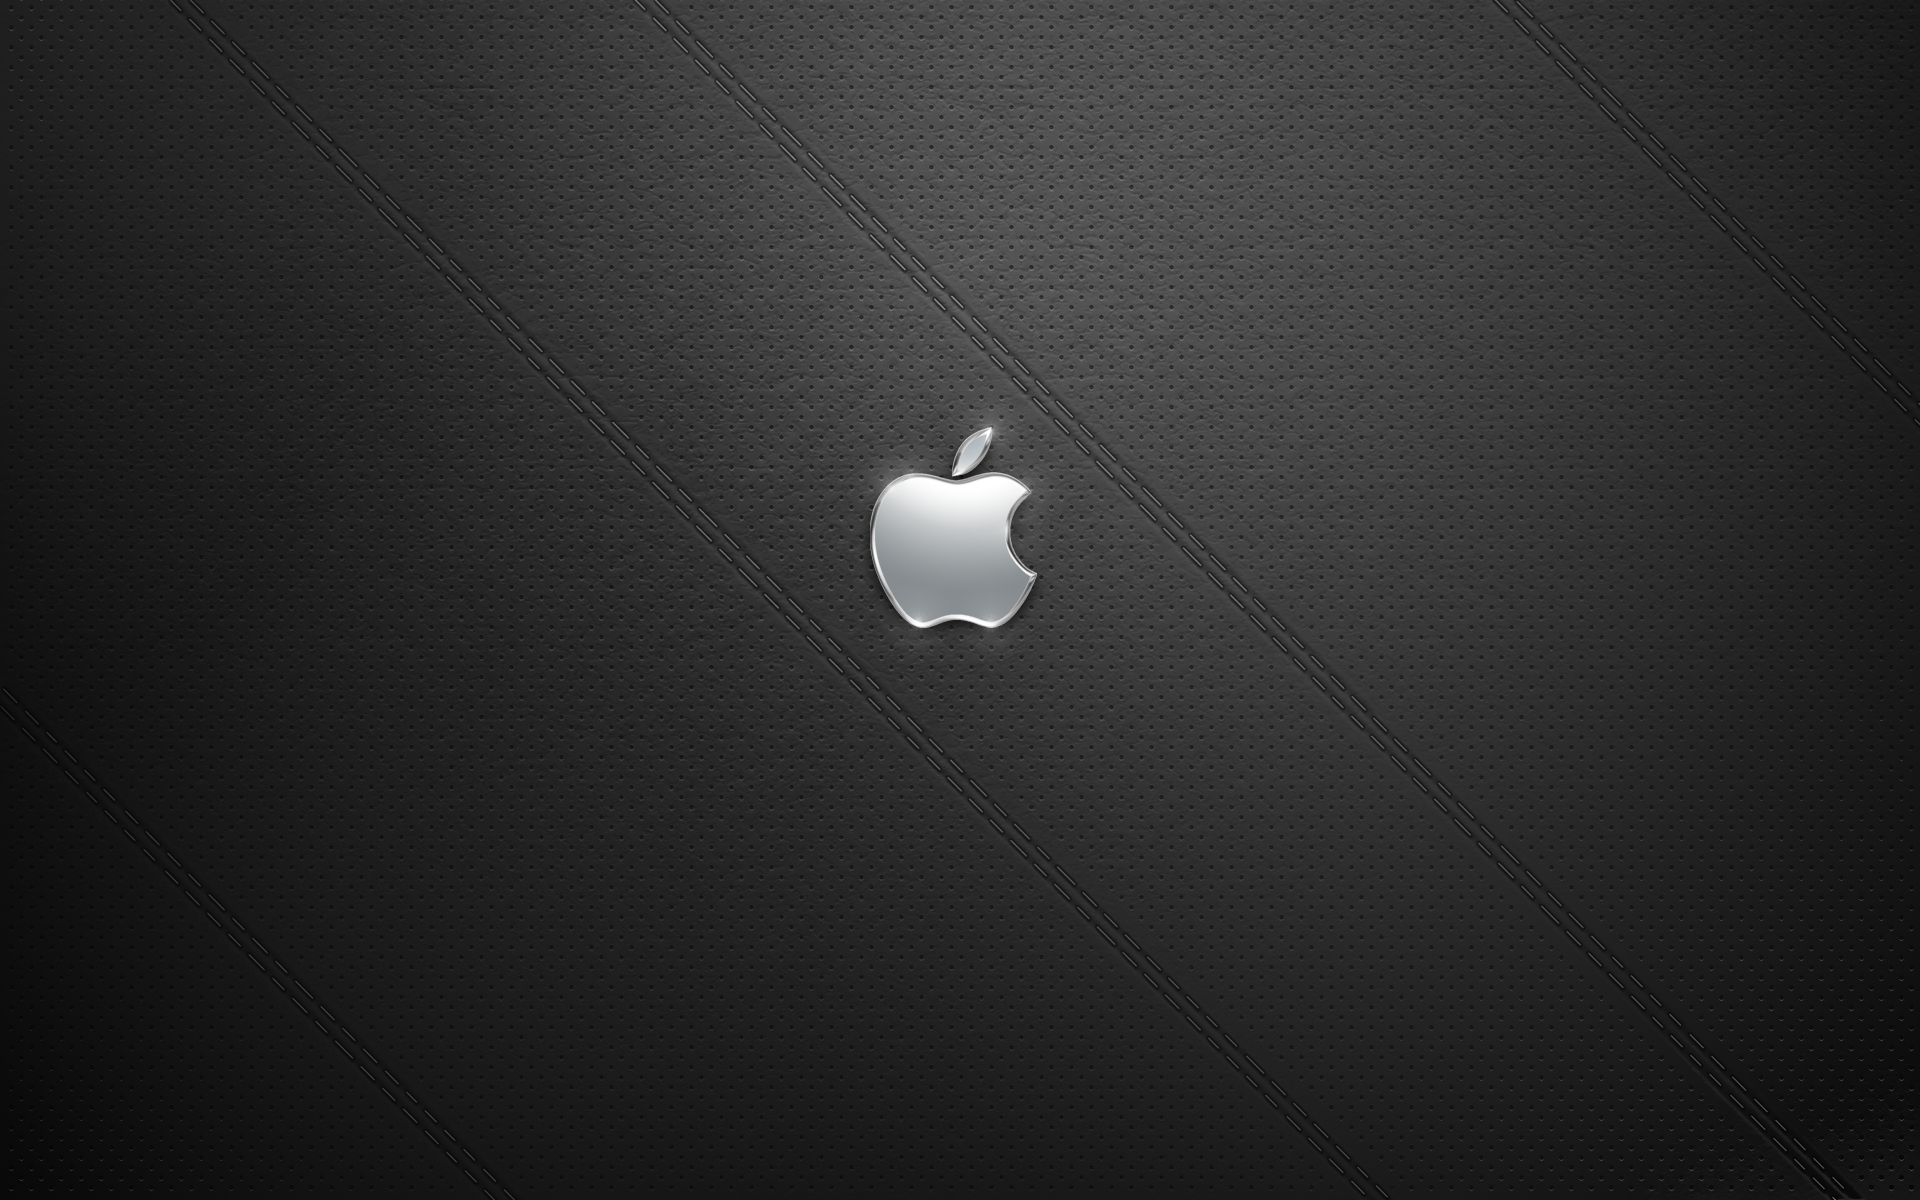 The Art Of Adam Betts Black Leather Apple Desktop Background